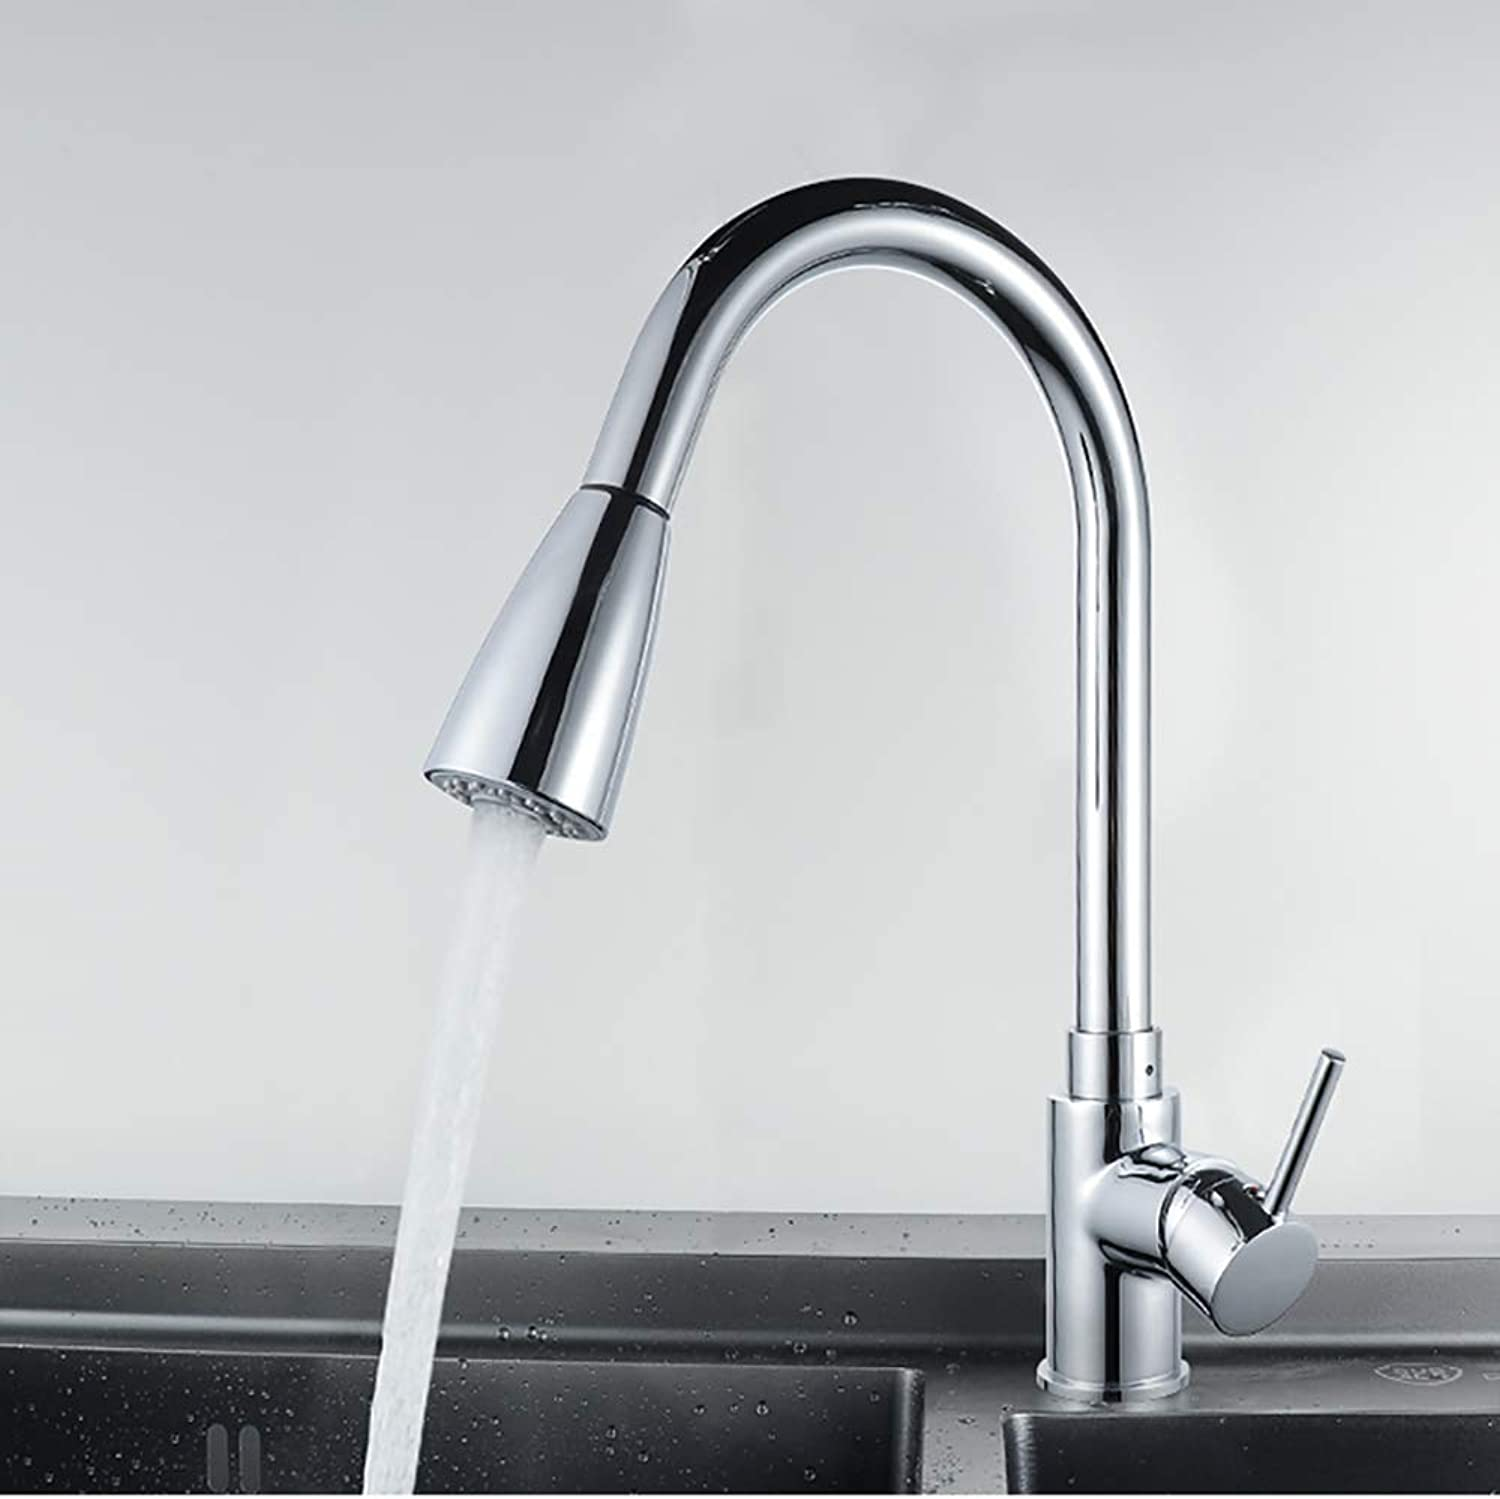 Chrome-plated copper kitchen sink faucet Pulling hot and cold sink faucet